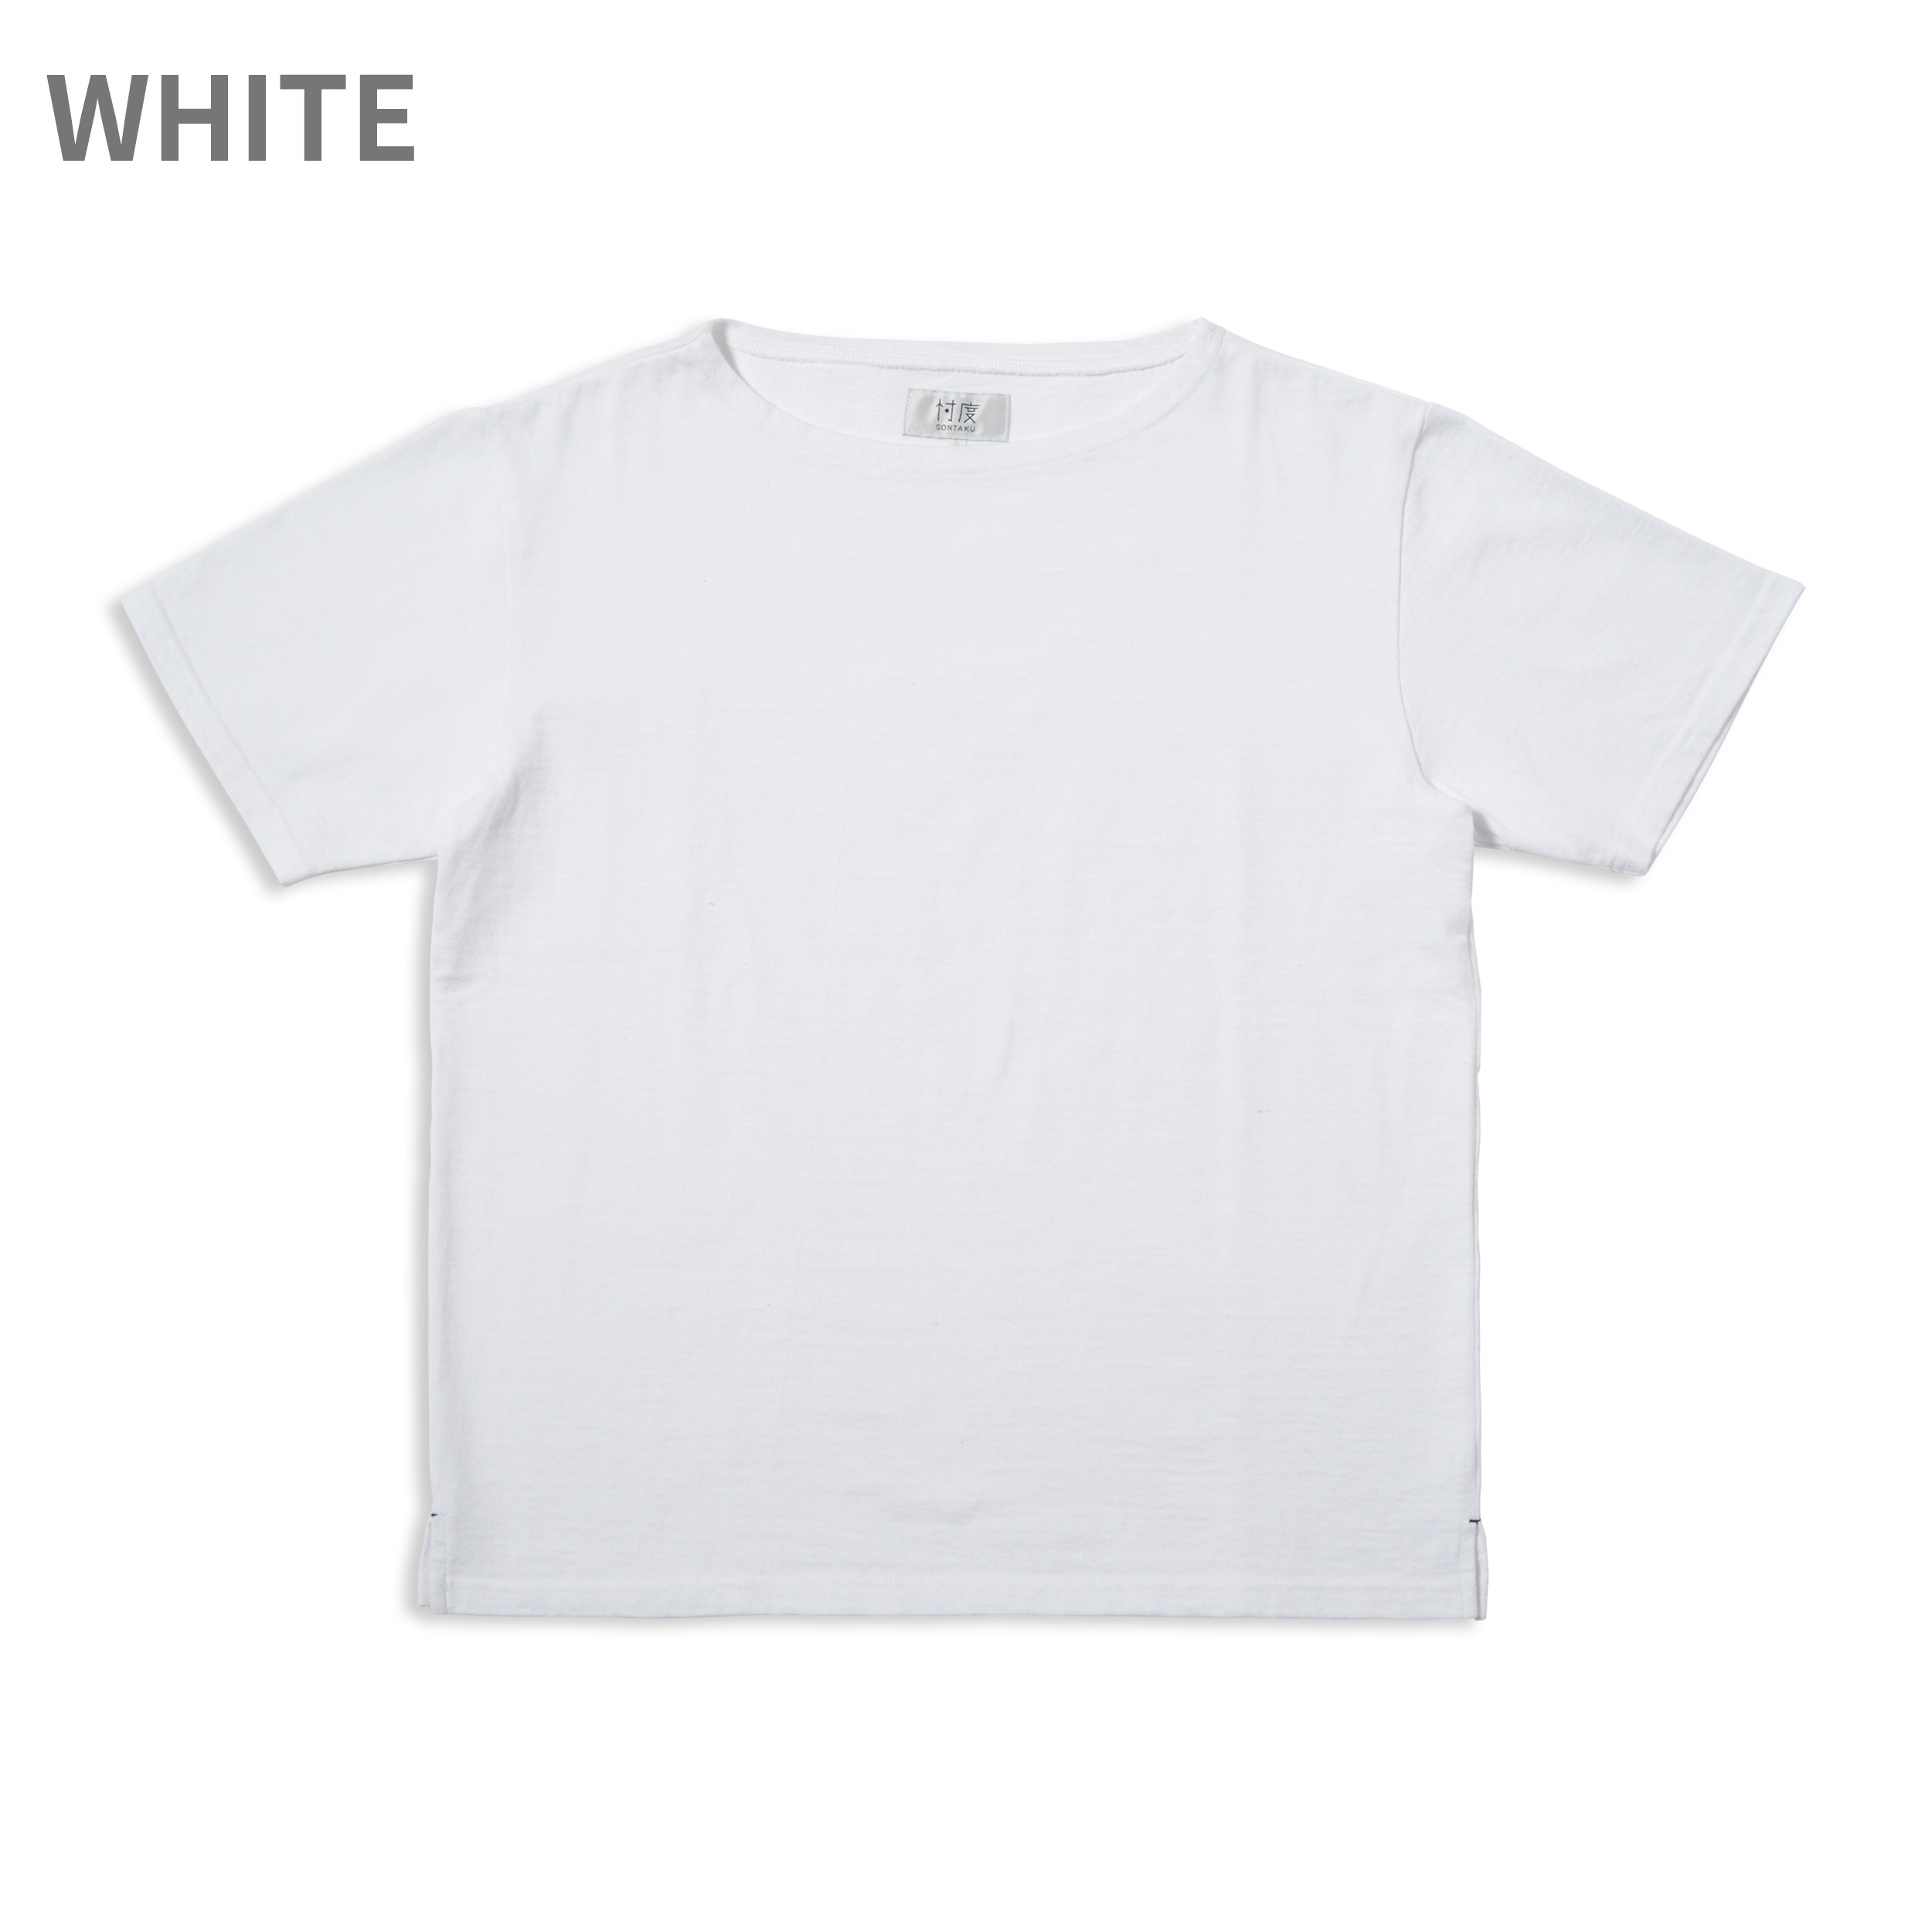 VASQUE T-SHIRT (半袖)